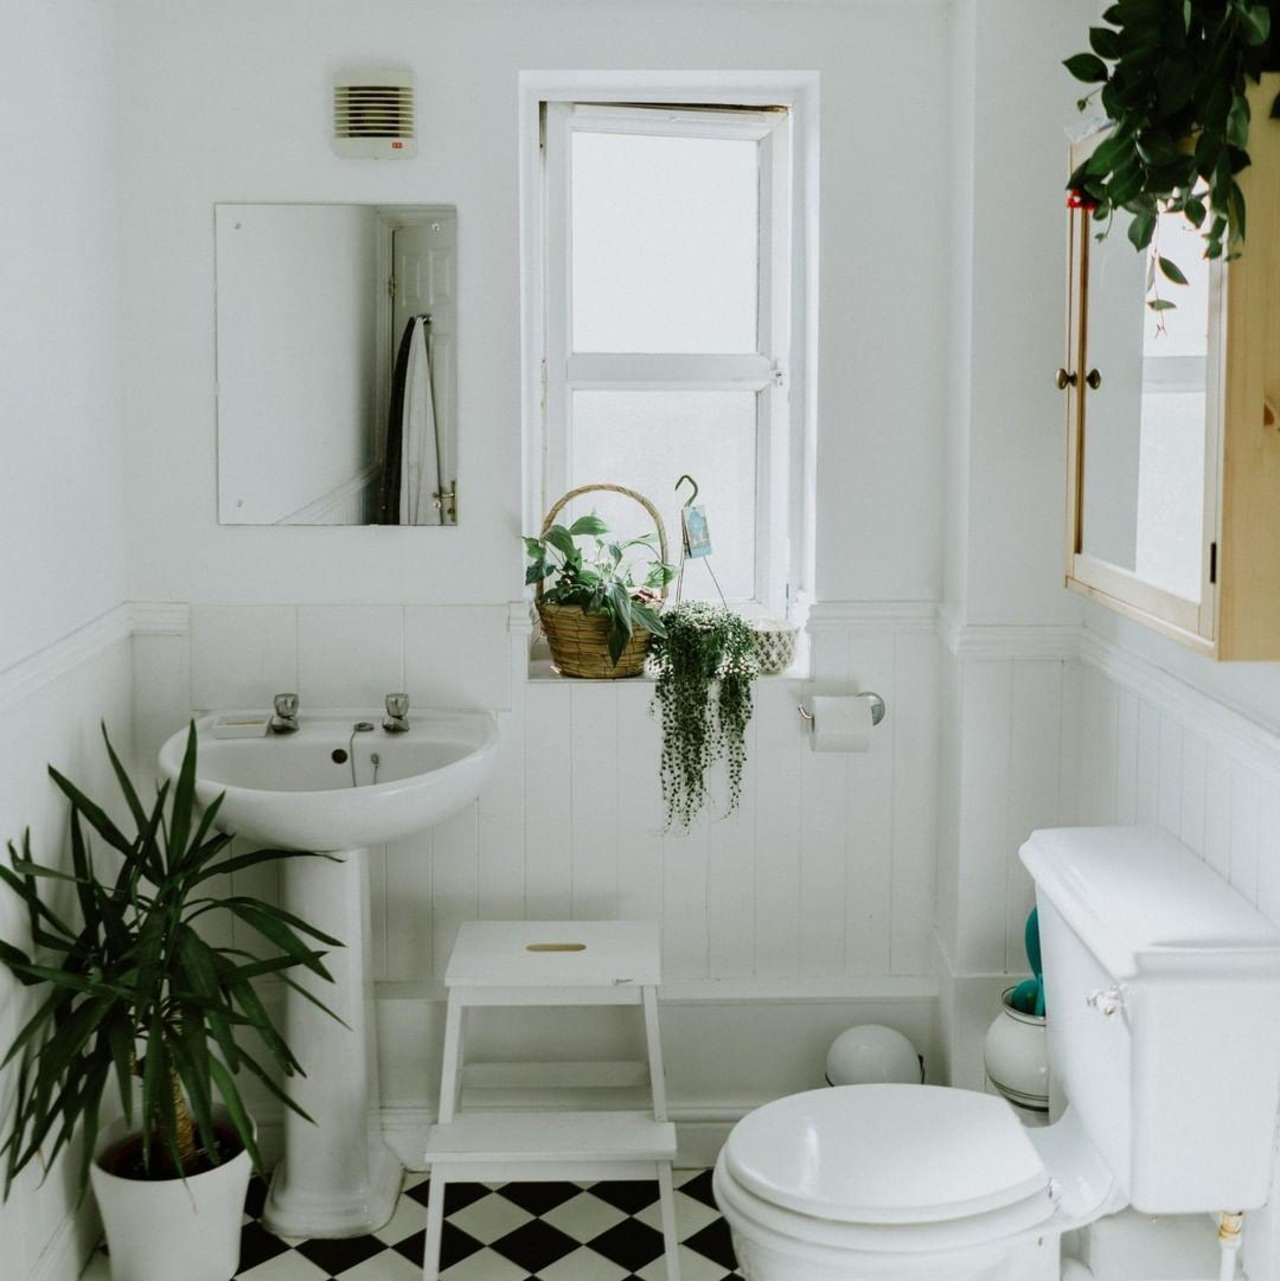 Indoor plants in the bathroom instantly lift the